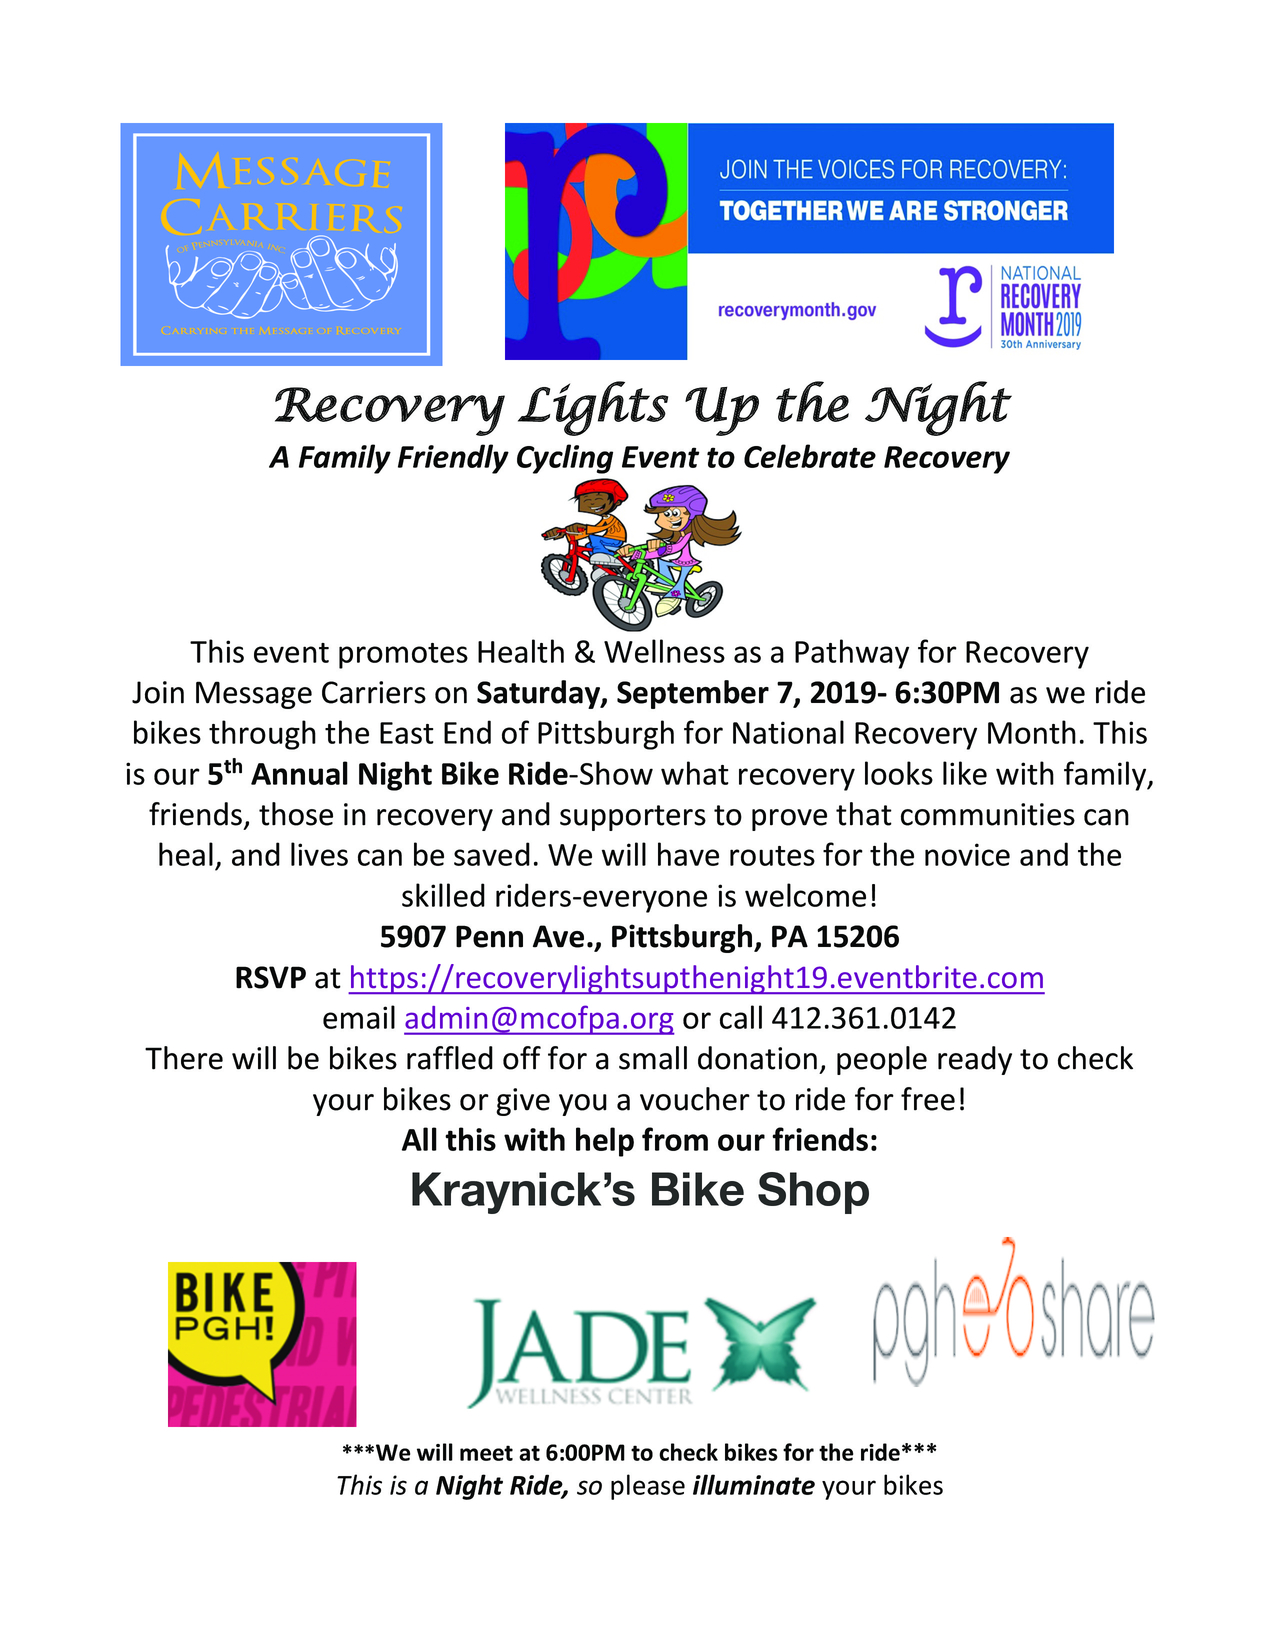 Recovery Lights Up The Night 2019